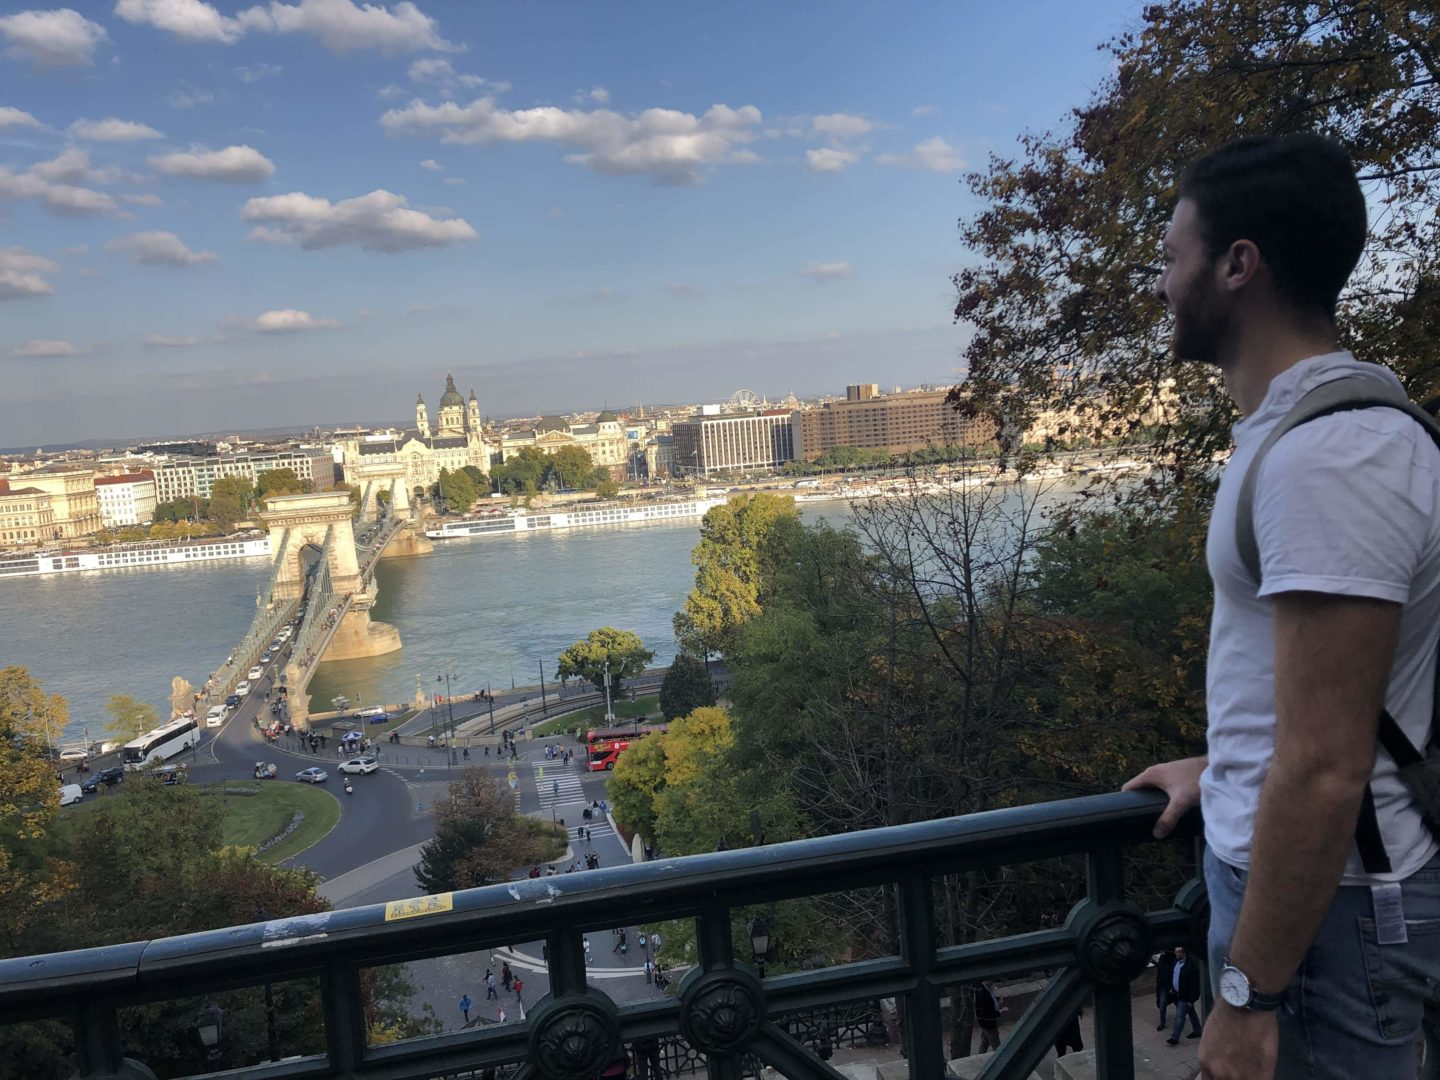 Budapest 2 Day Itinerary: Maximize Your Time in Budapest!